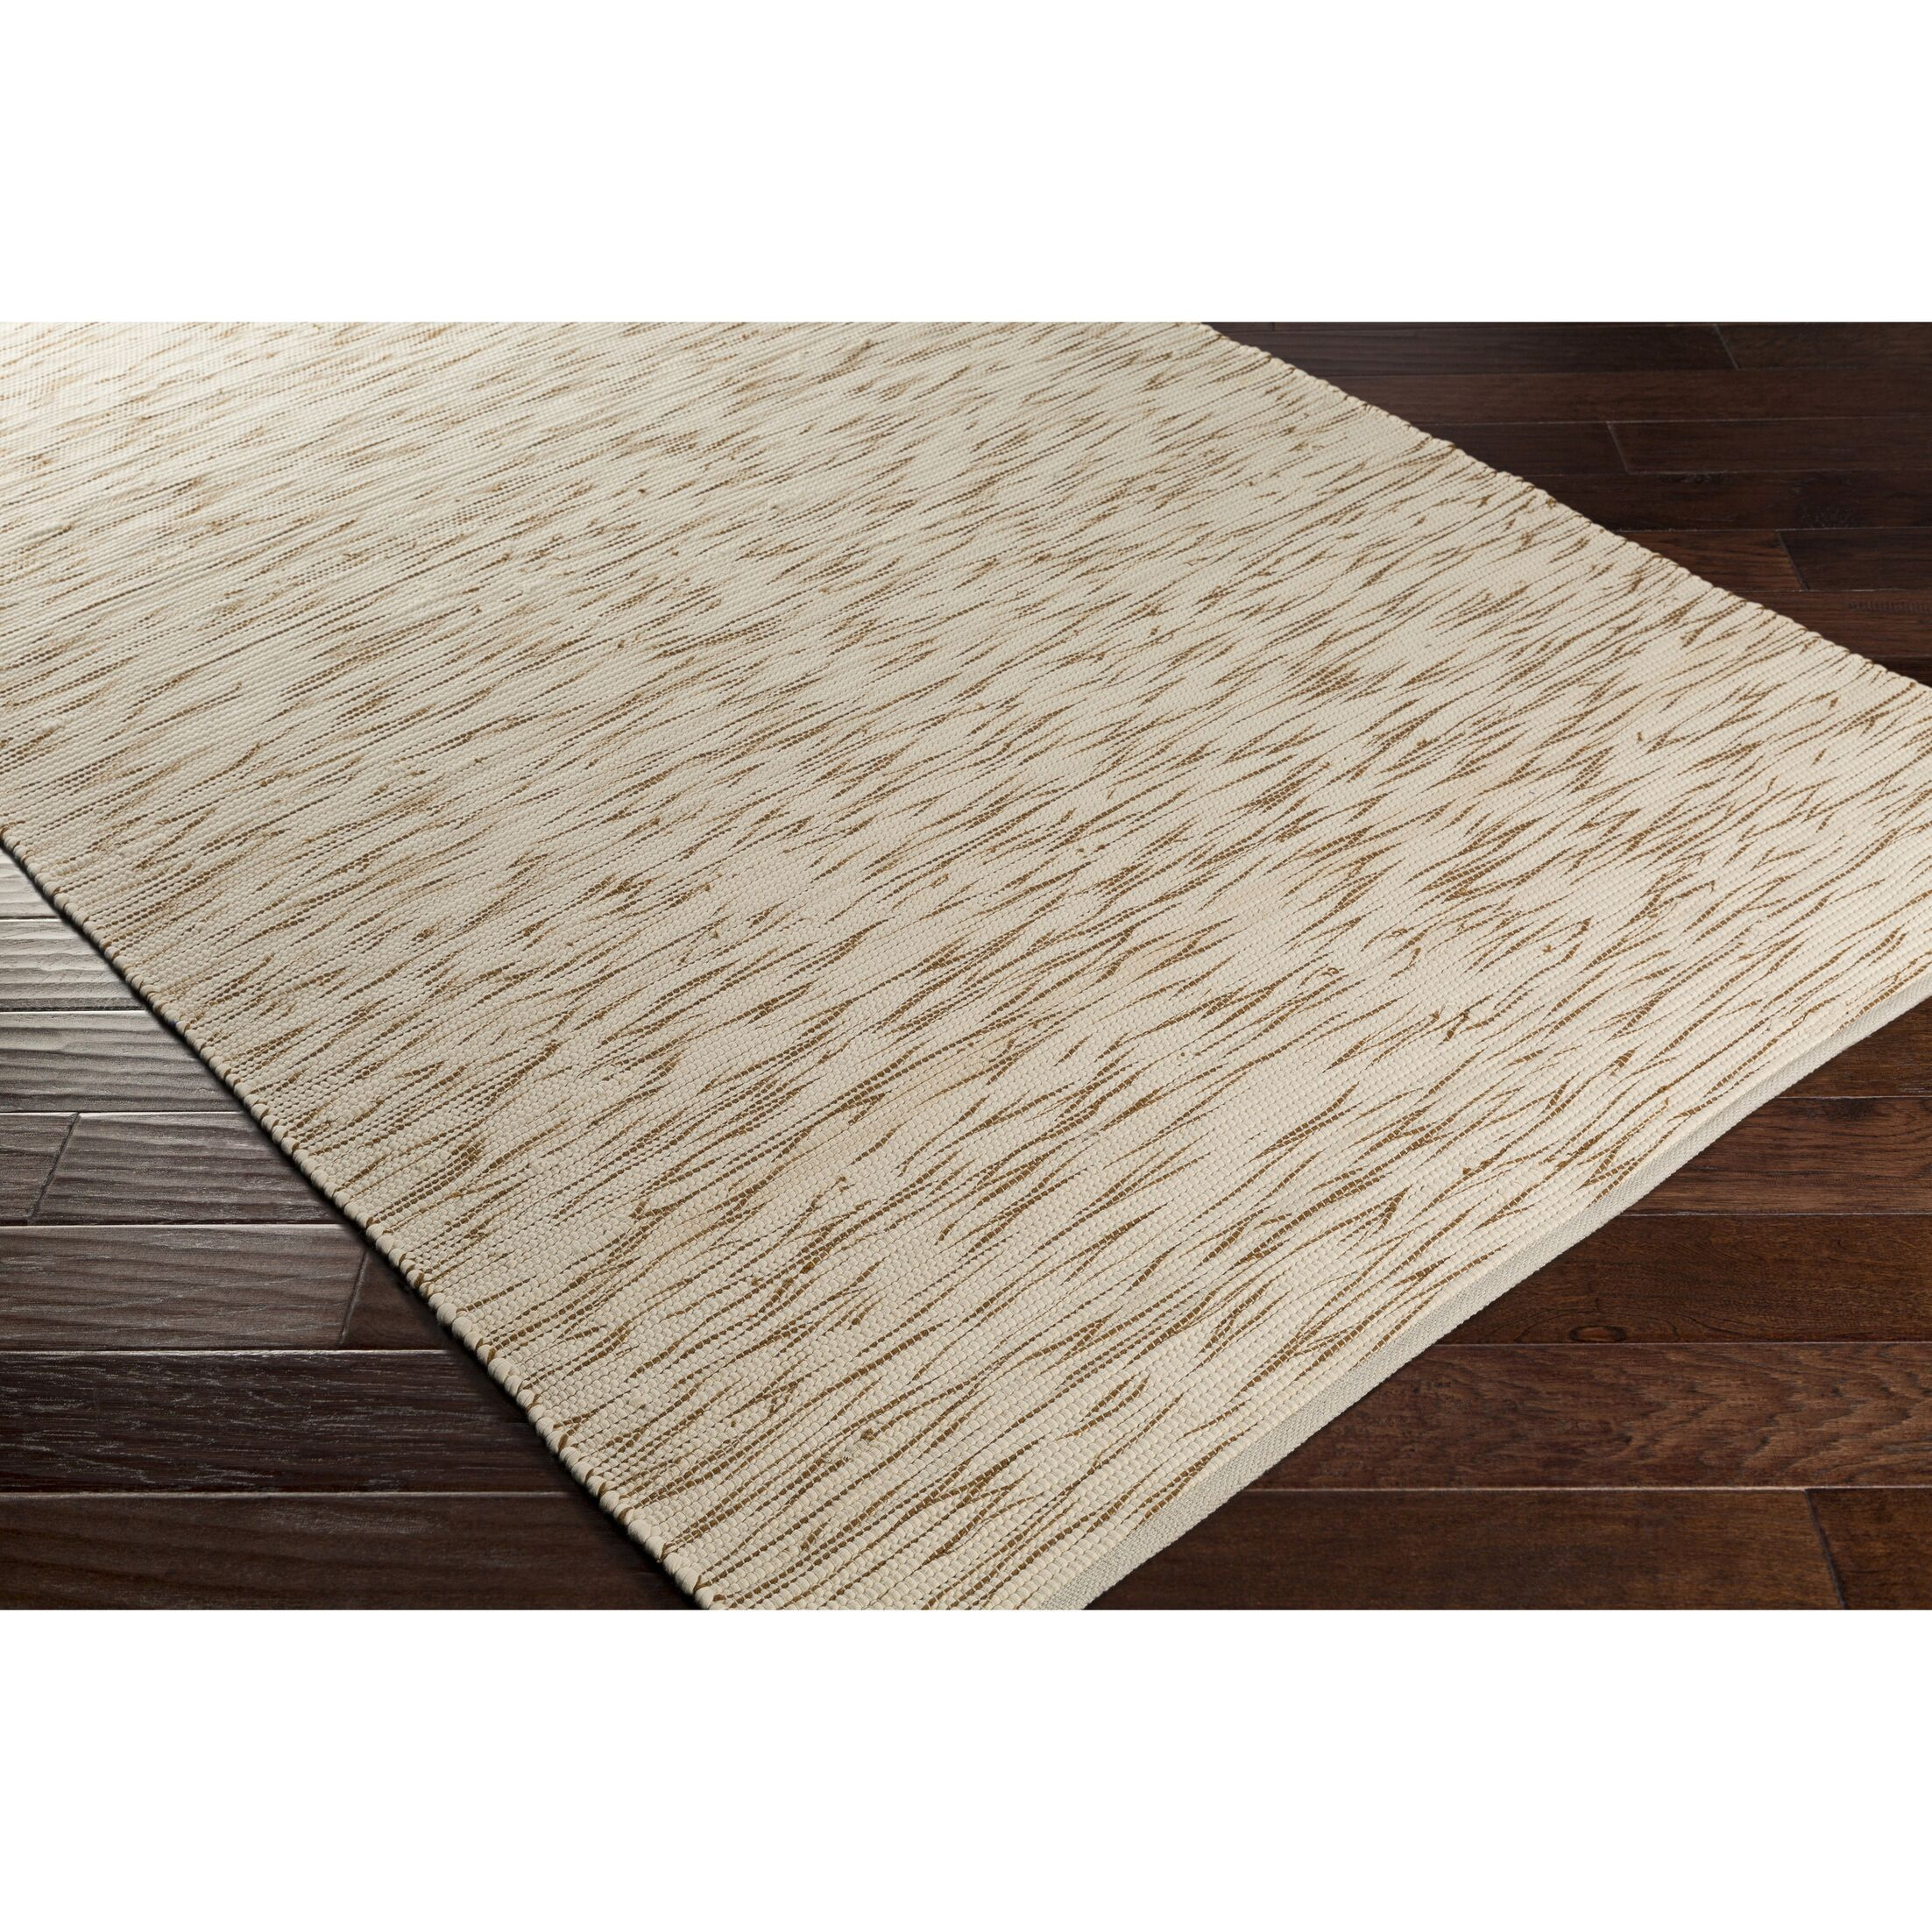 Forestport Hand-Woven Brown/Neutral Area Rug Rug Size: Rectangle 5' x 7'6